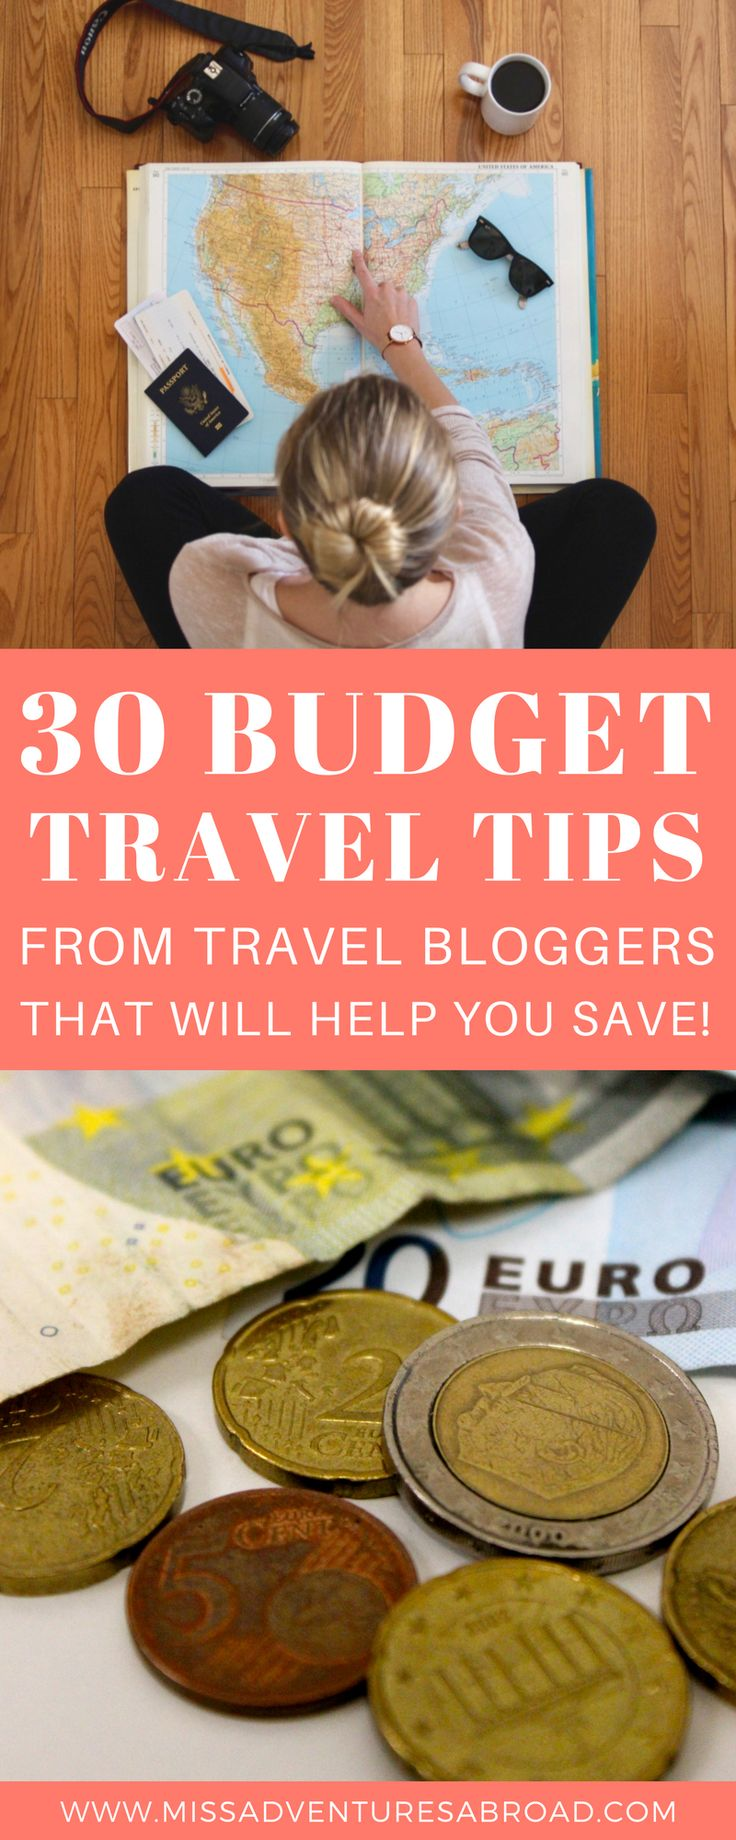 30 budget travel tips from travel bloggers